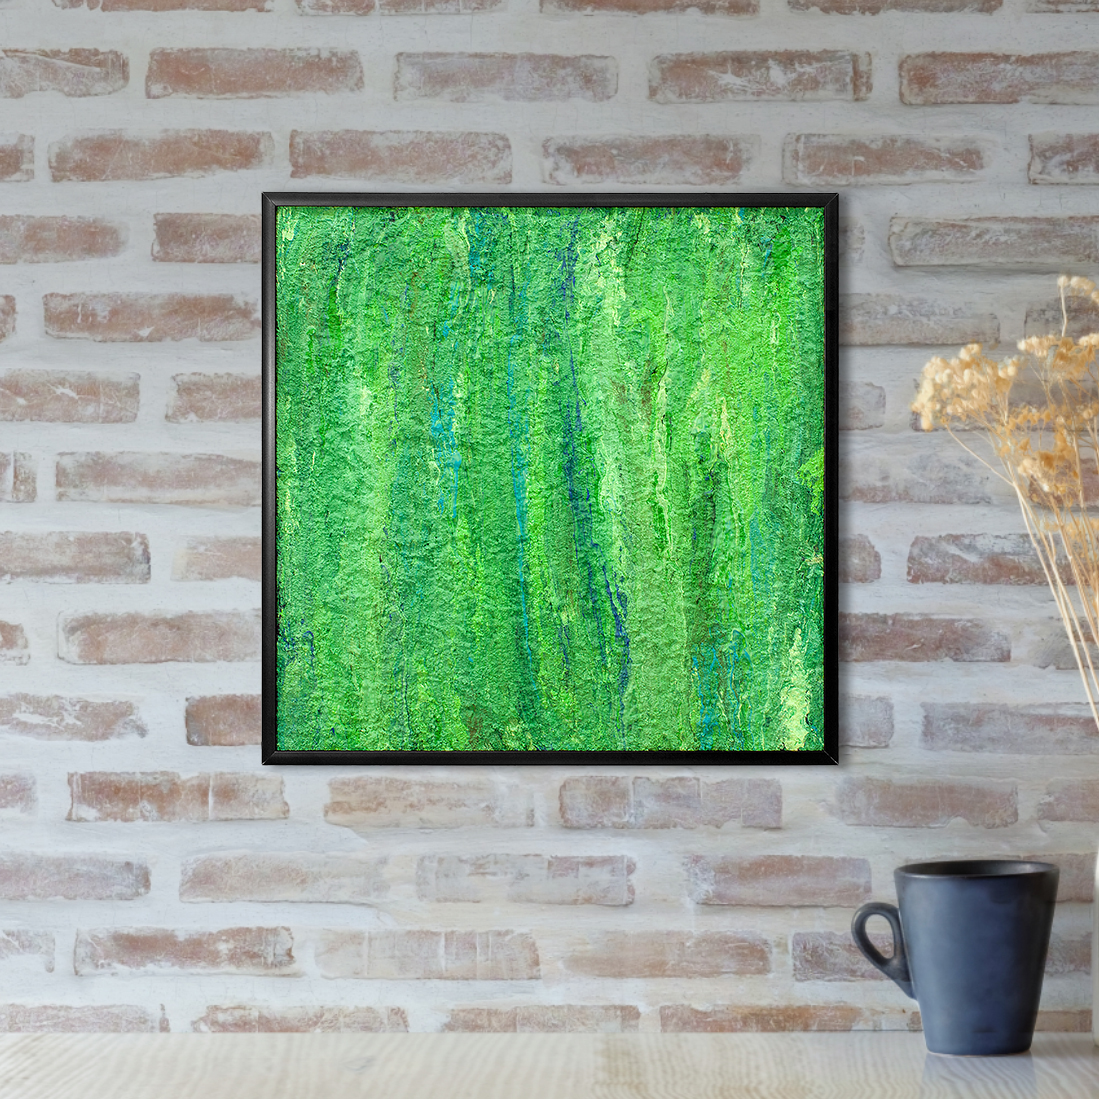 Lush - Abstract Green Painting by Heather Miller of WhiteRose's Art